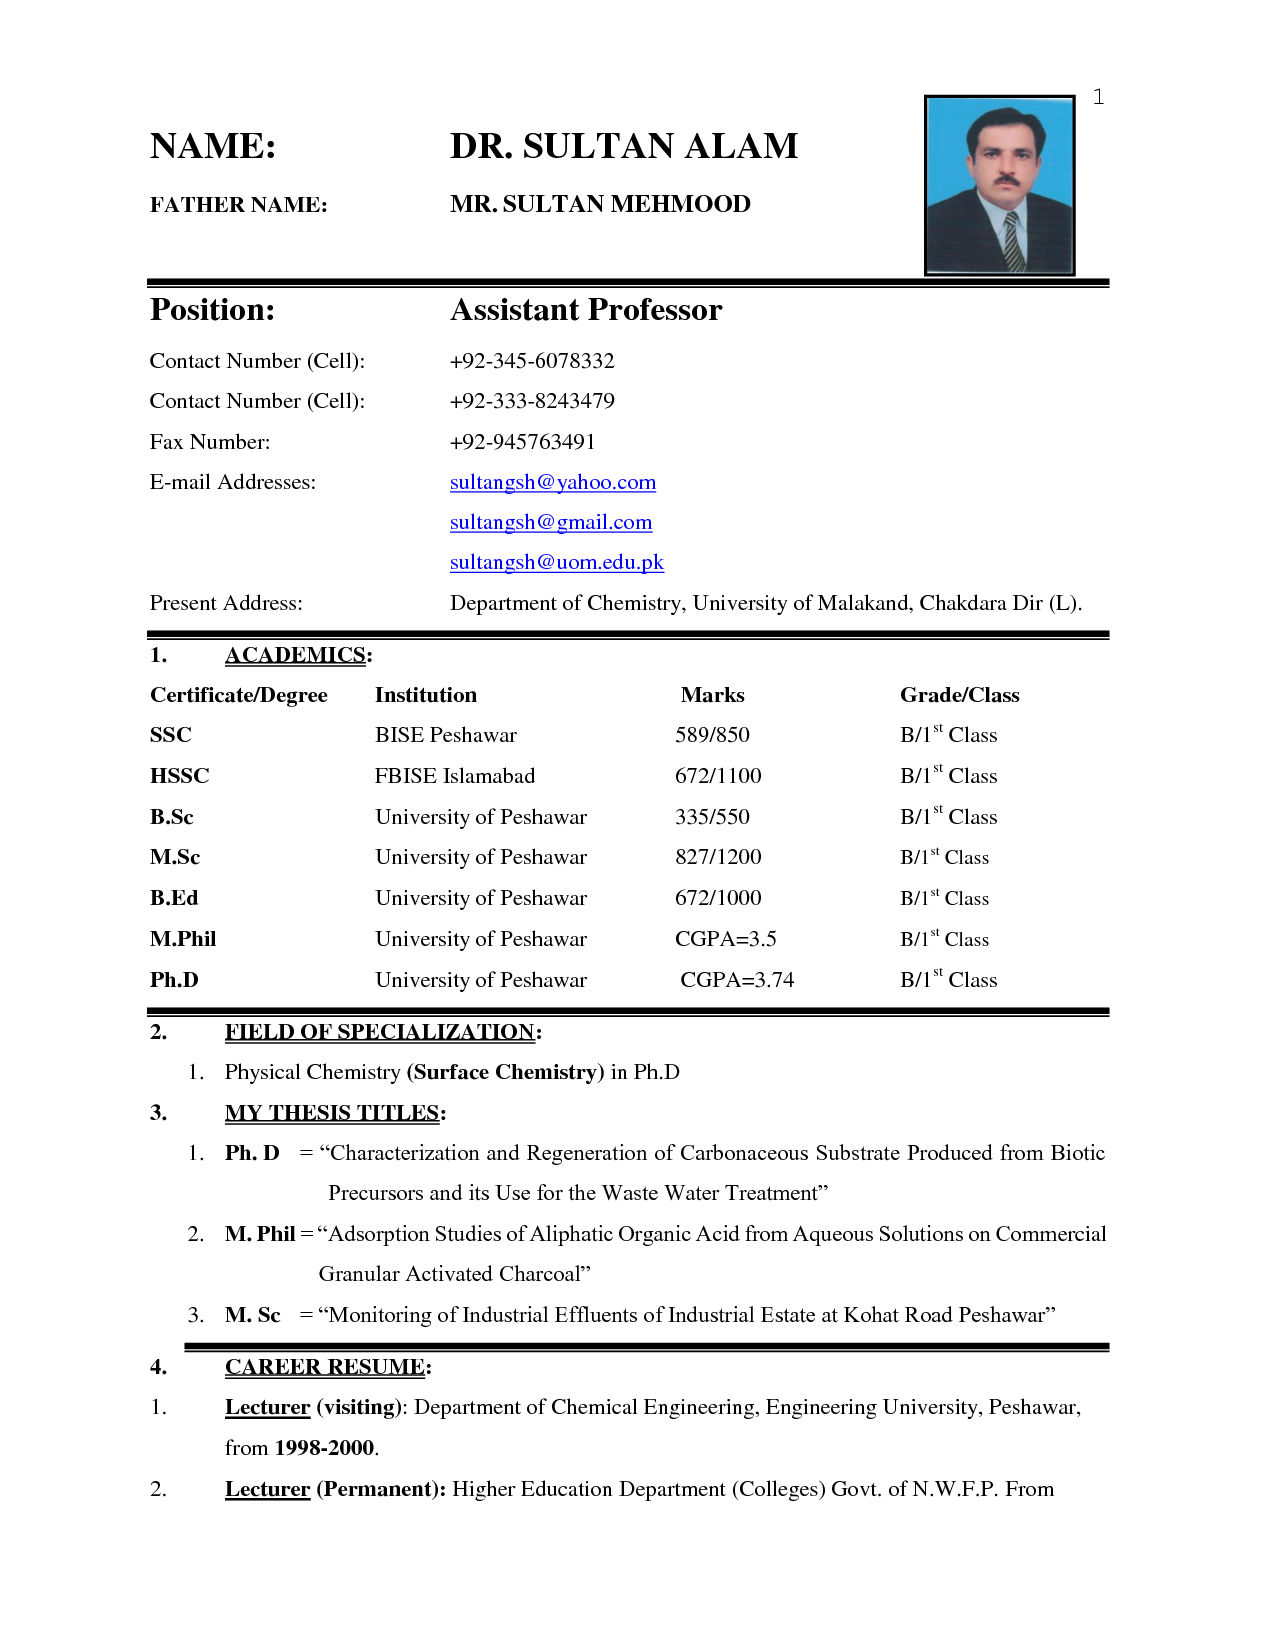 biodata form in word simple biodata format doc letterformats biodata sample download cv formatresume - Cv Resume Format Download